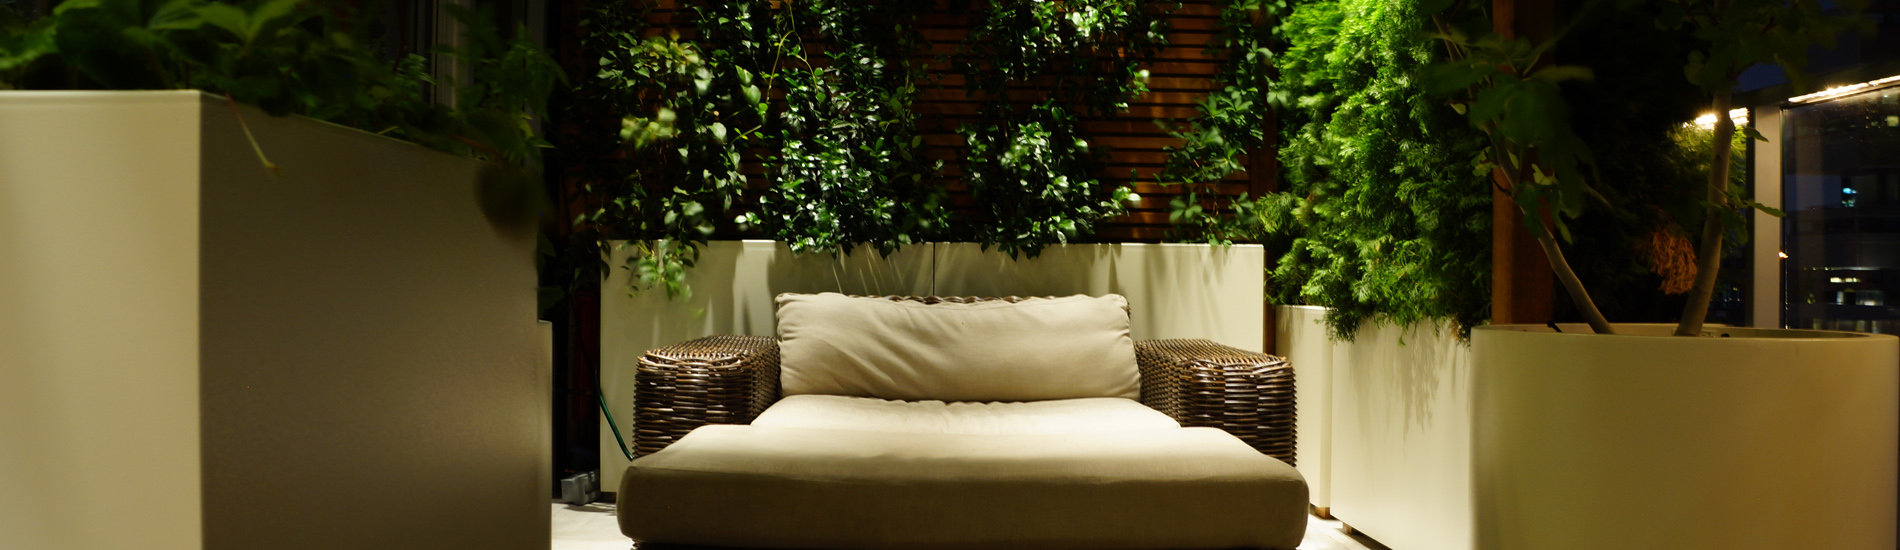 Low Voltage outdor lighting design for rooftop gardens and backyards